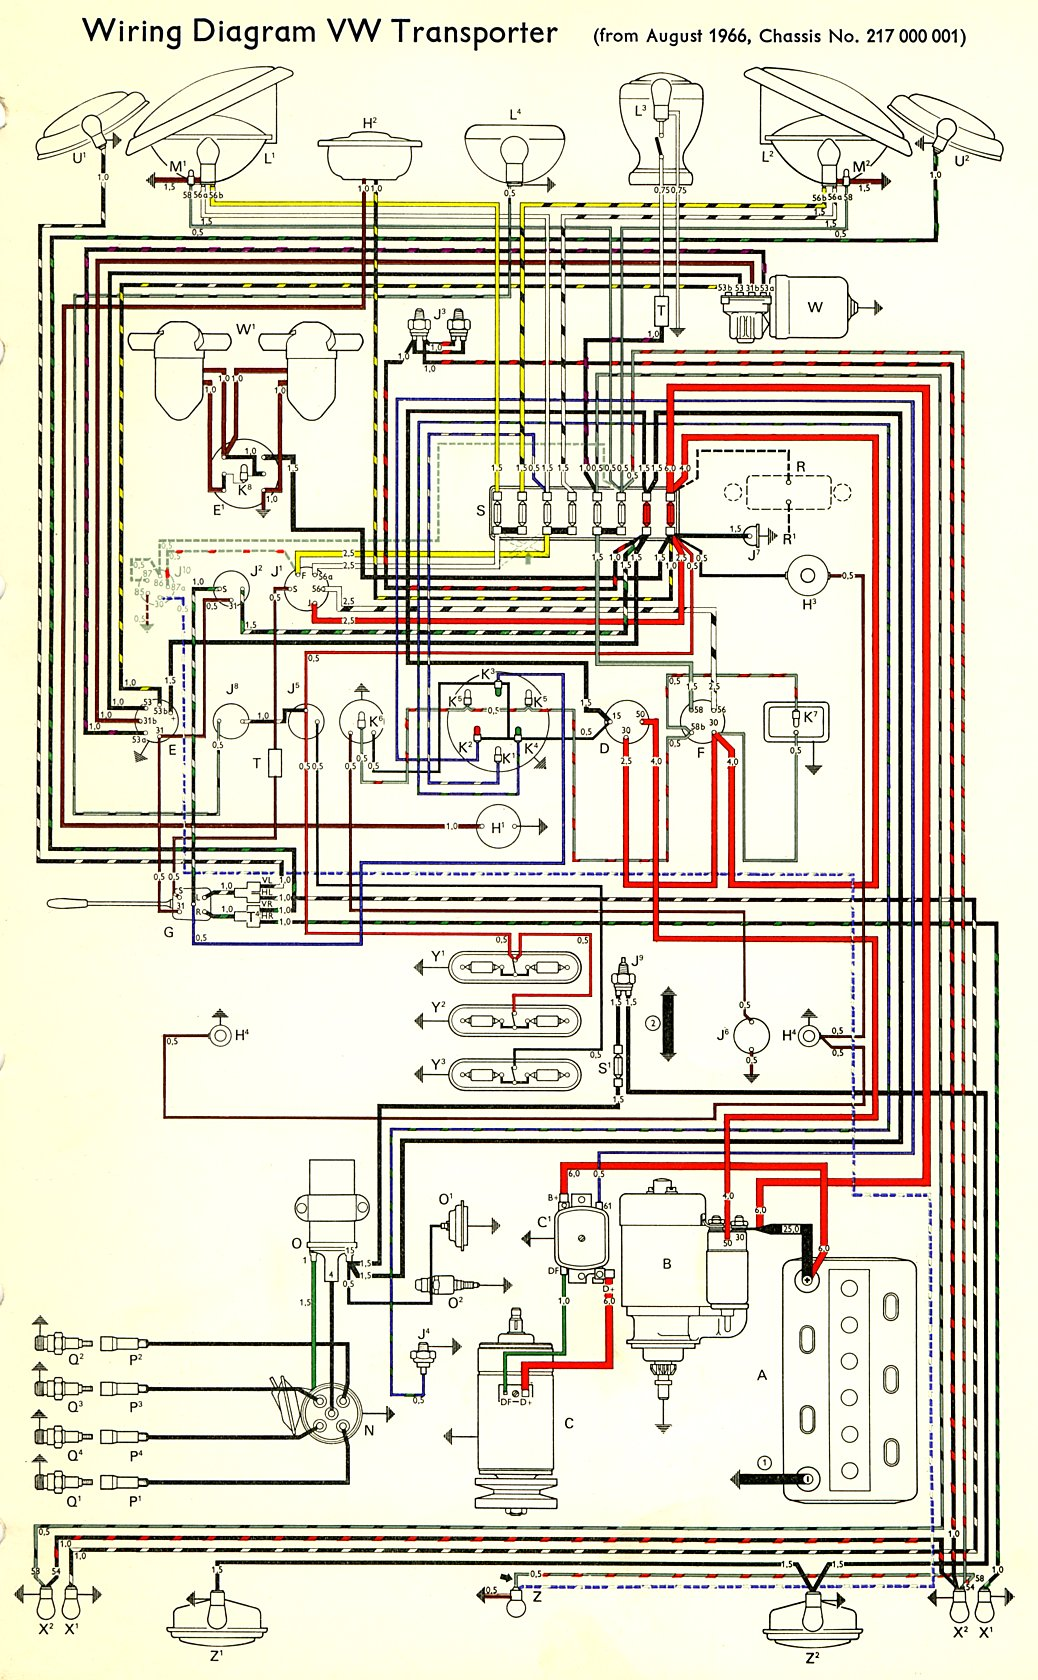 bus_67 vw bus wiring diagram 1965 vw bus wiring diagram \u2022 wiring diagrams 1965 vw bus wiring harness at mifinder.co